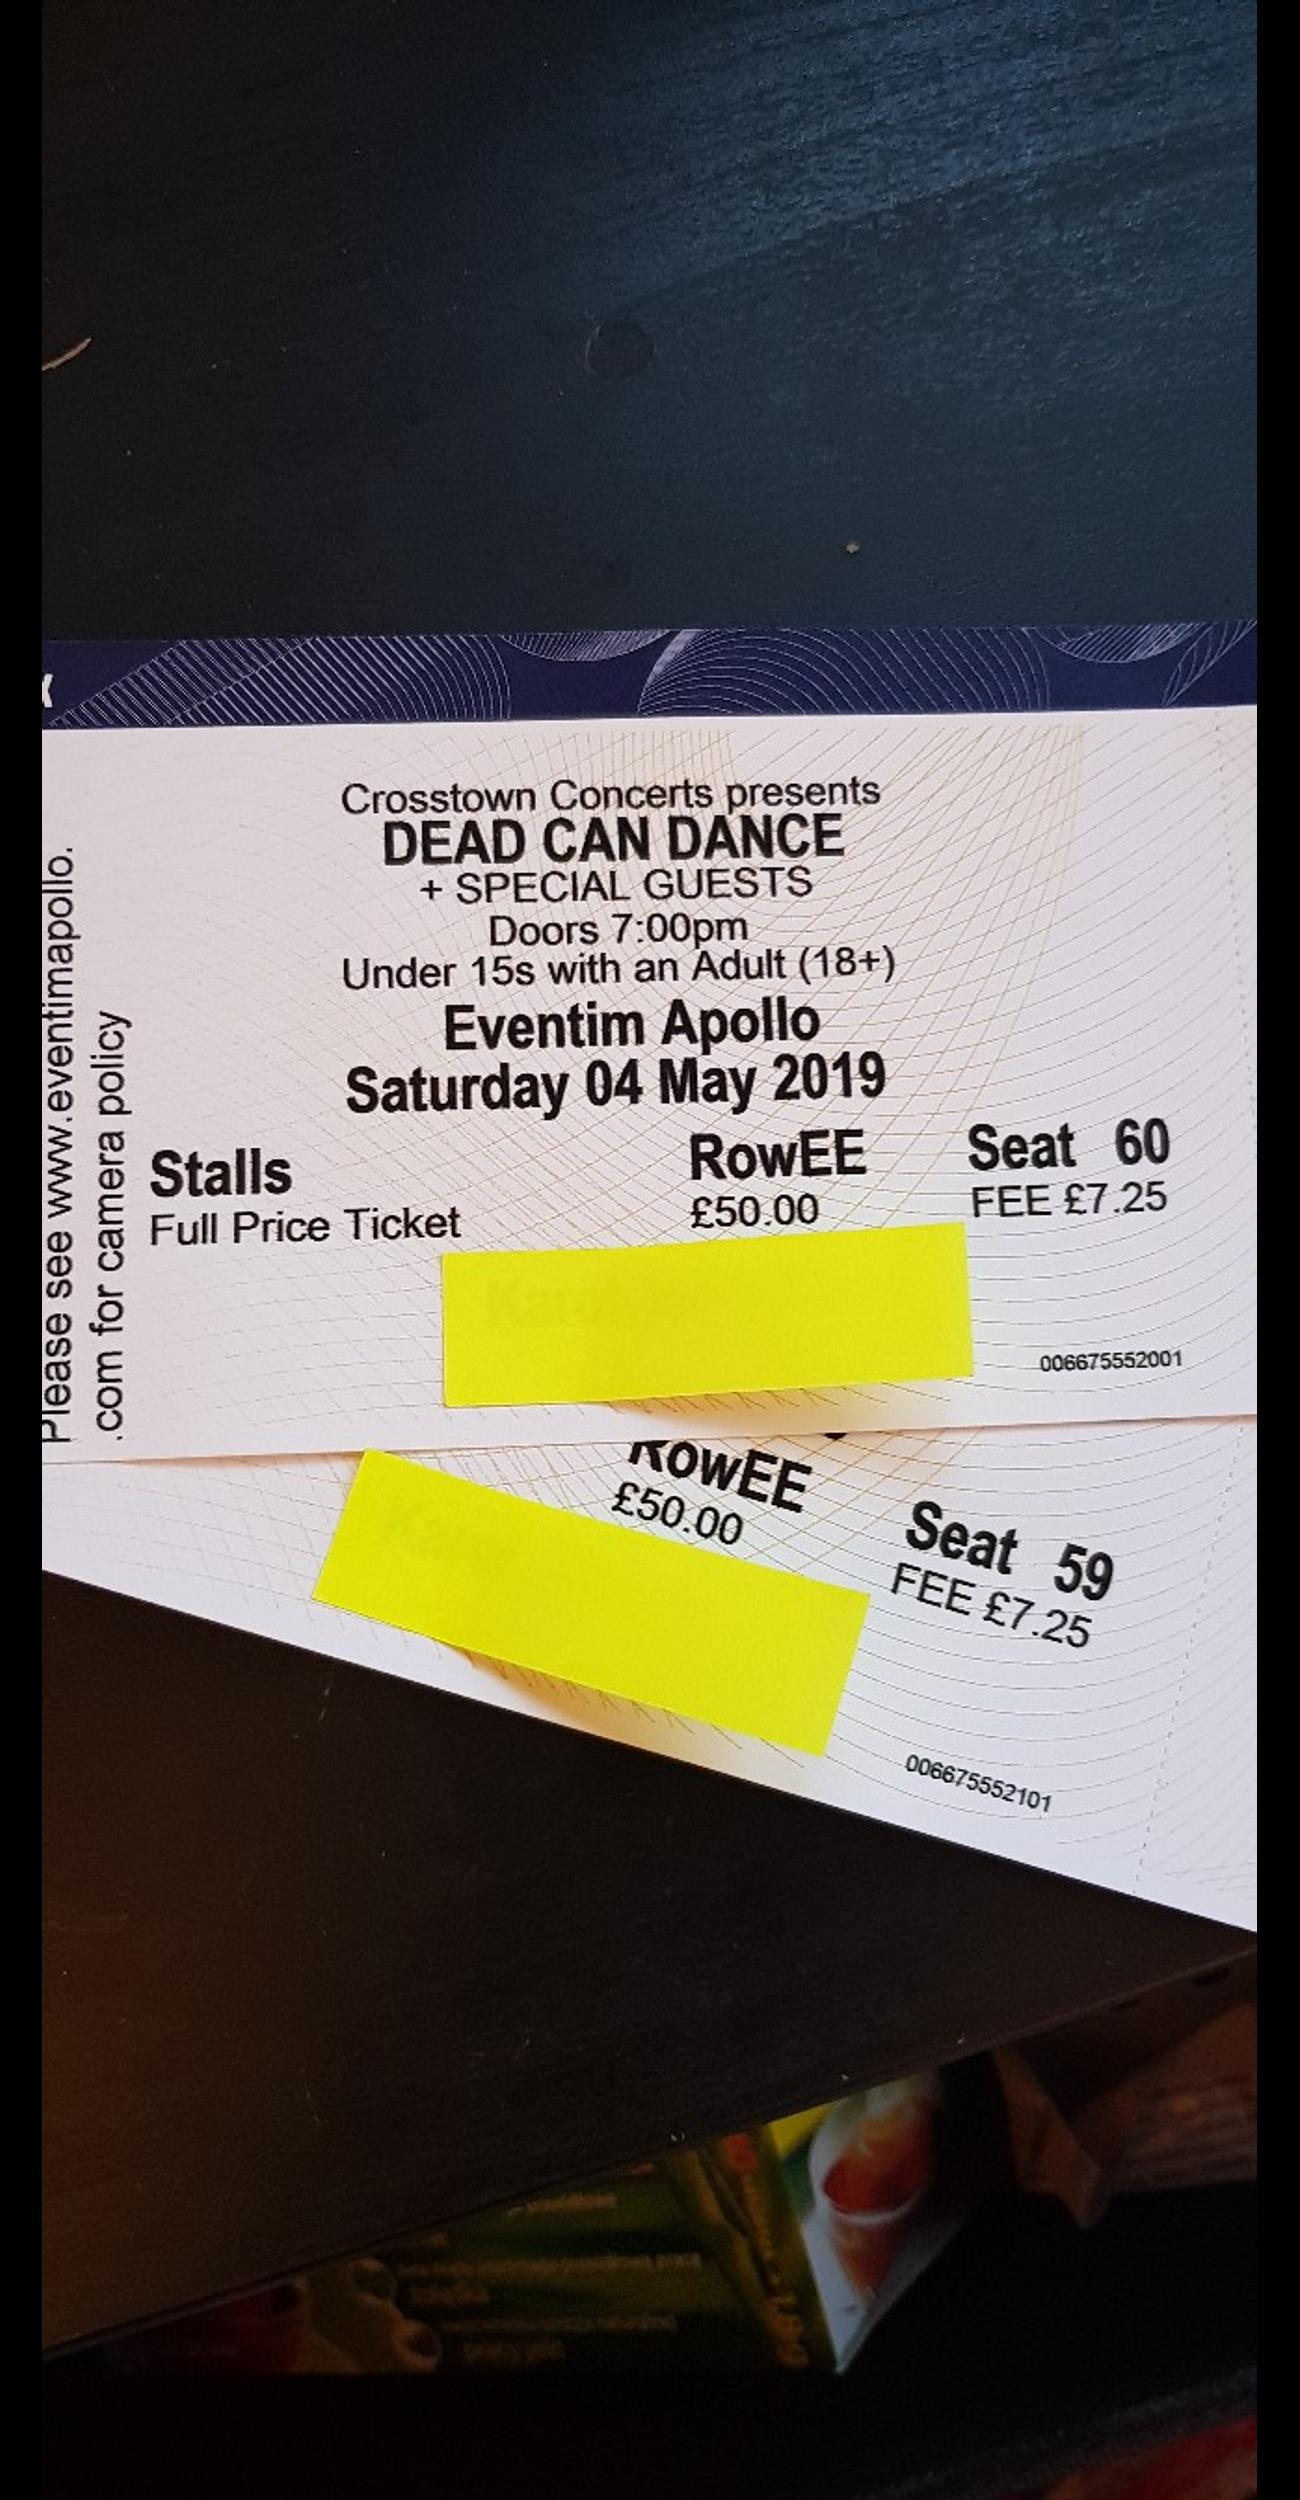 2 tickets for Saturday 04 May 2019 Dead Can Dance + Special Guests £90 each